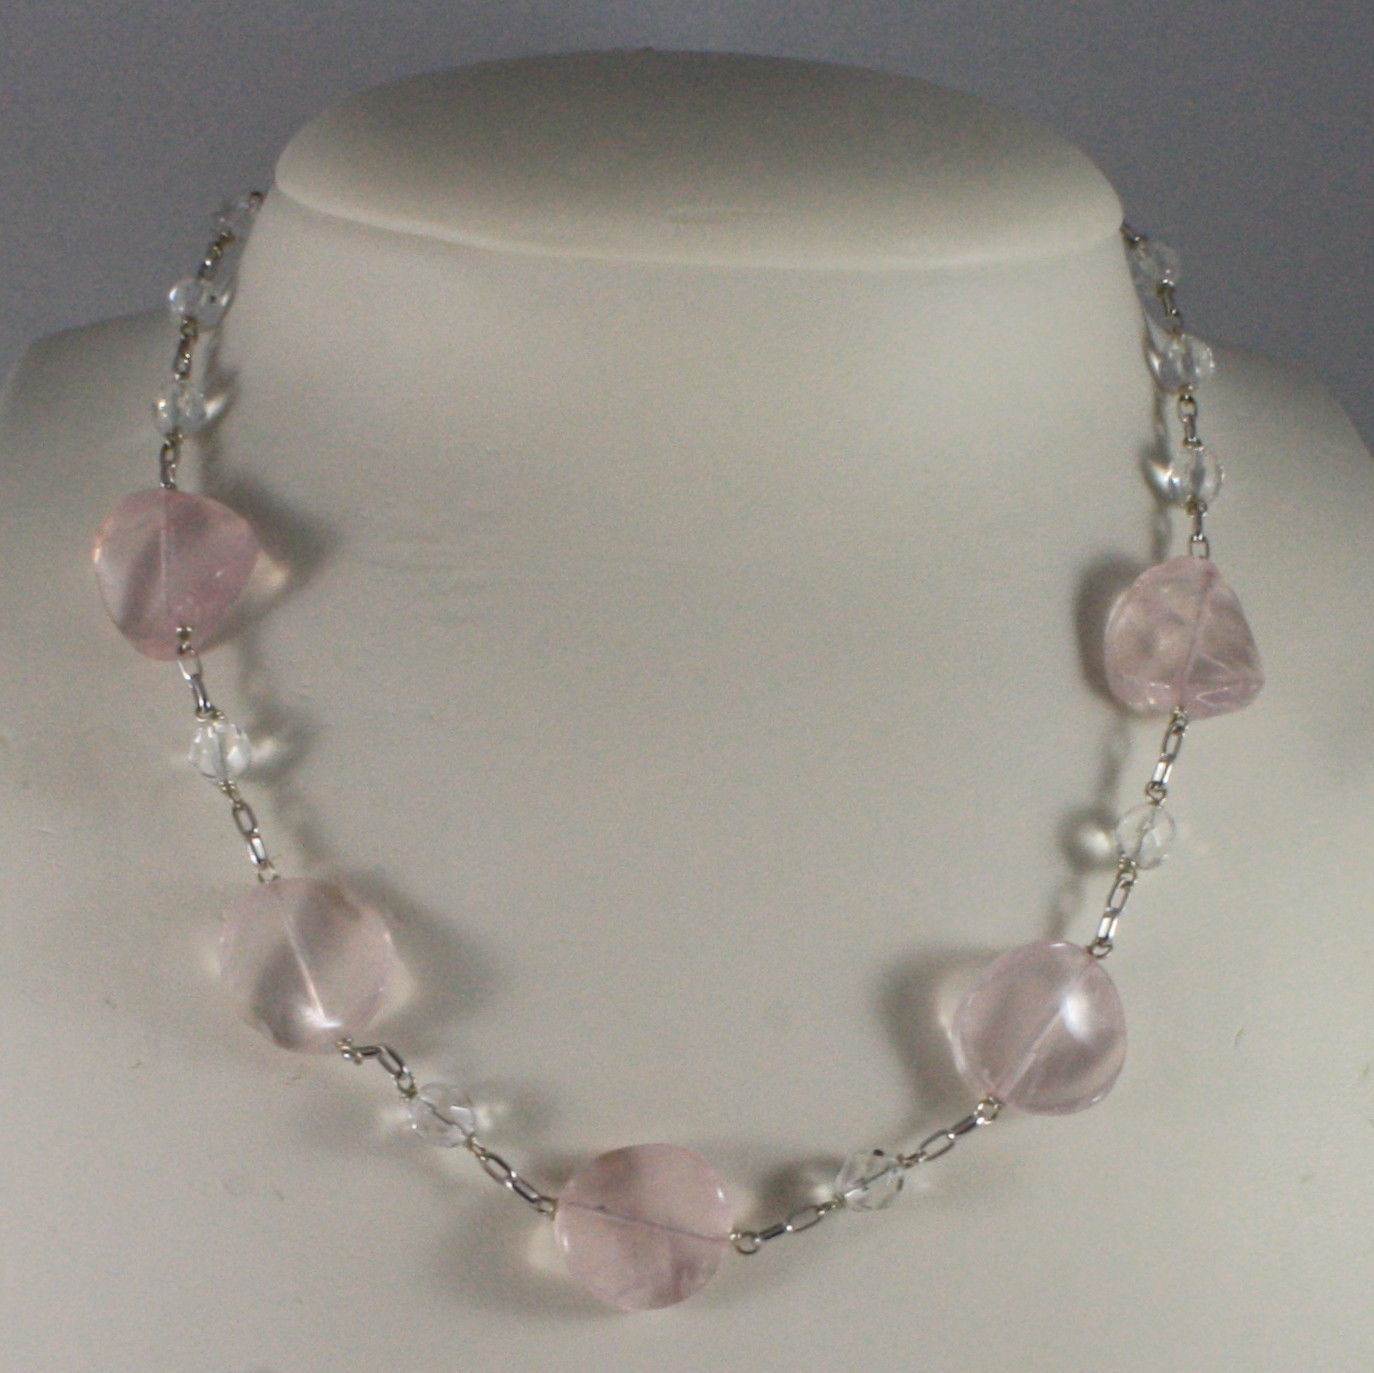 .925 SILVER RHODIUM NECKLACE WITH PINK AND TRANSPARENT CRISTALS 16,73 IN